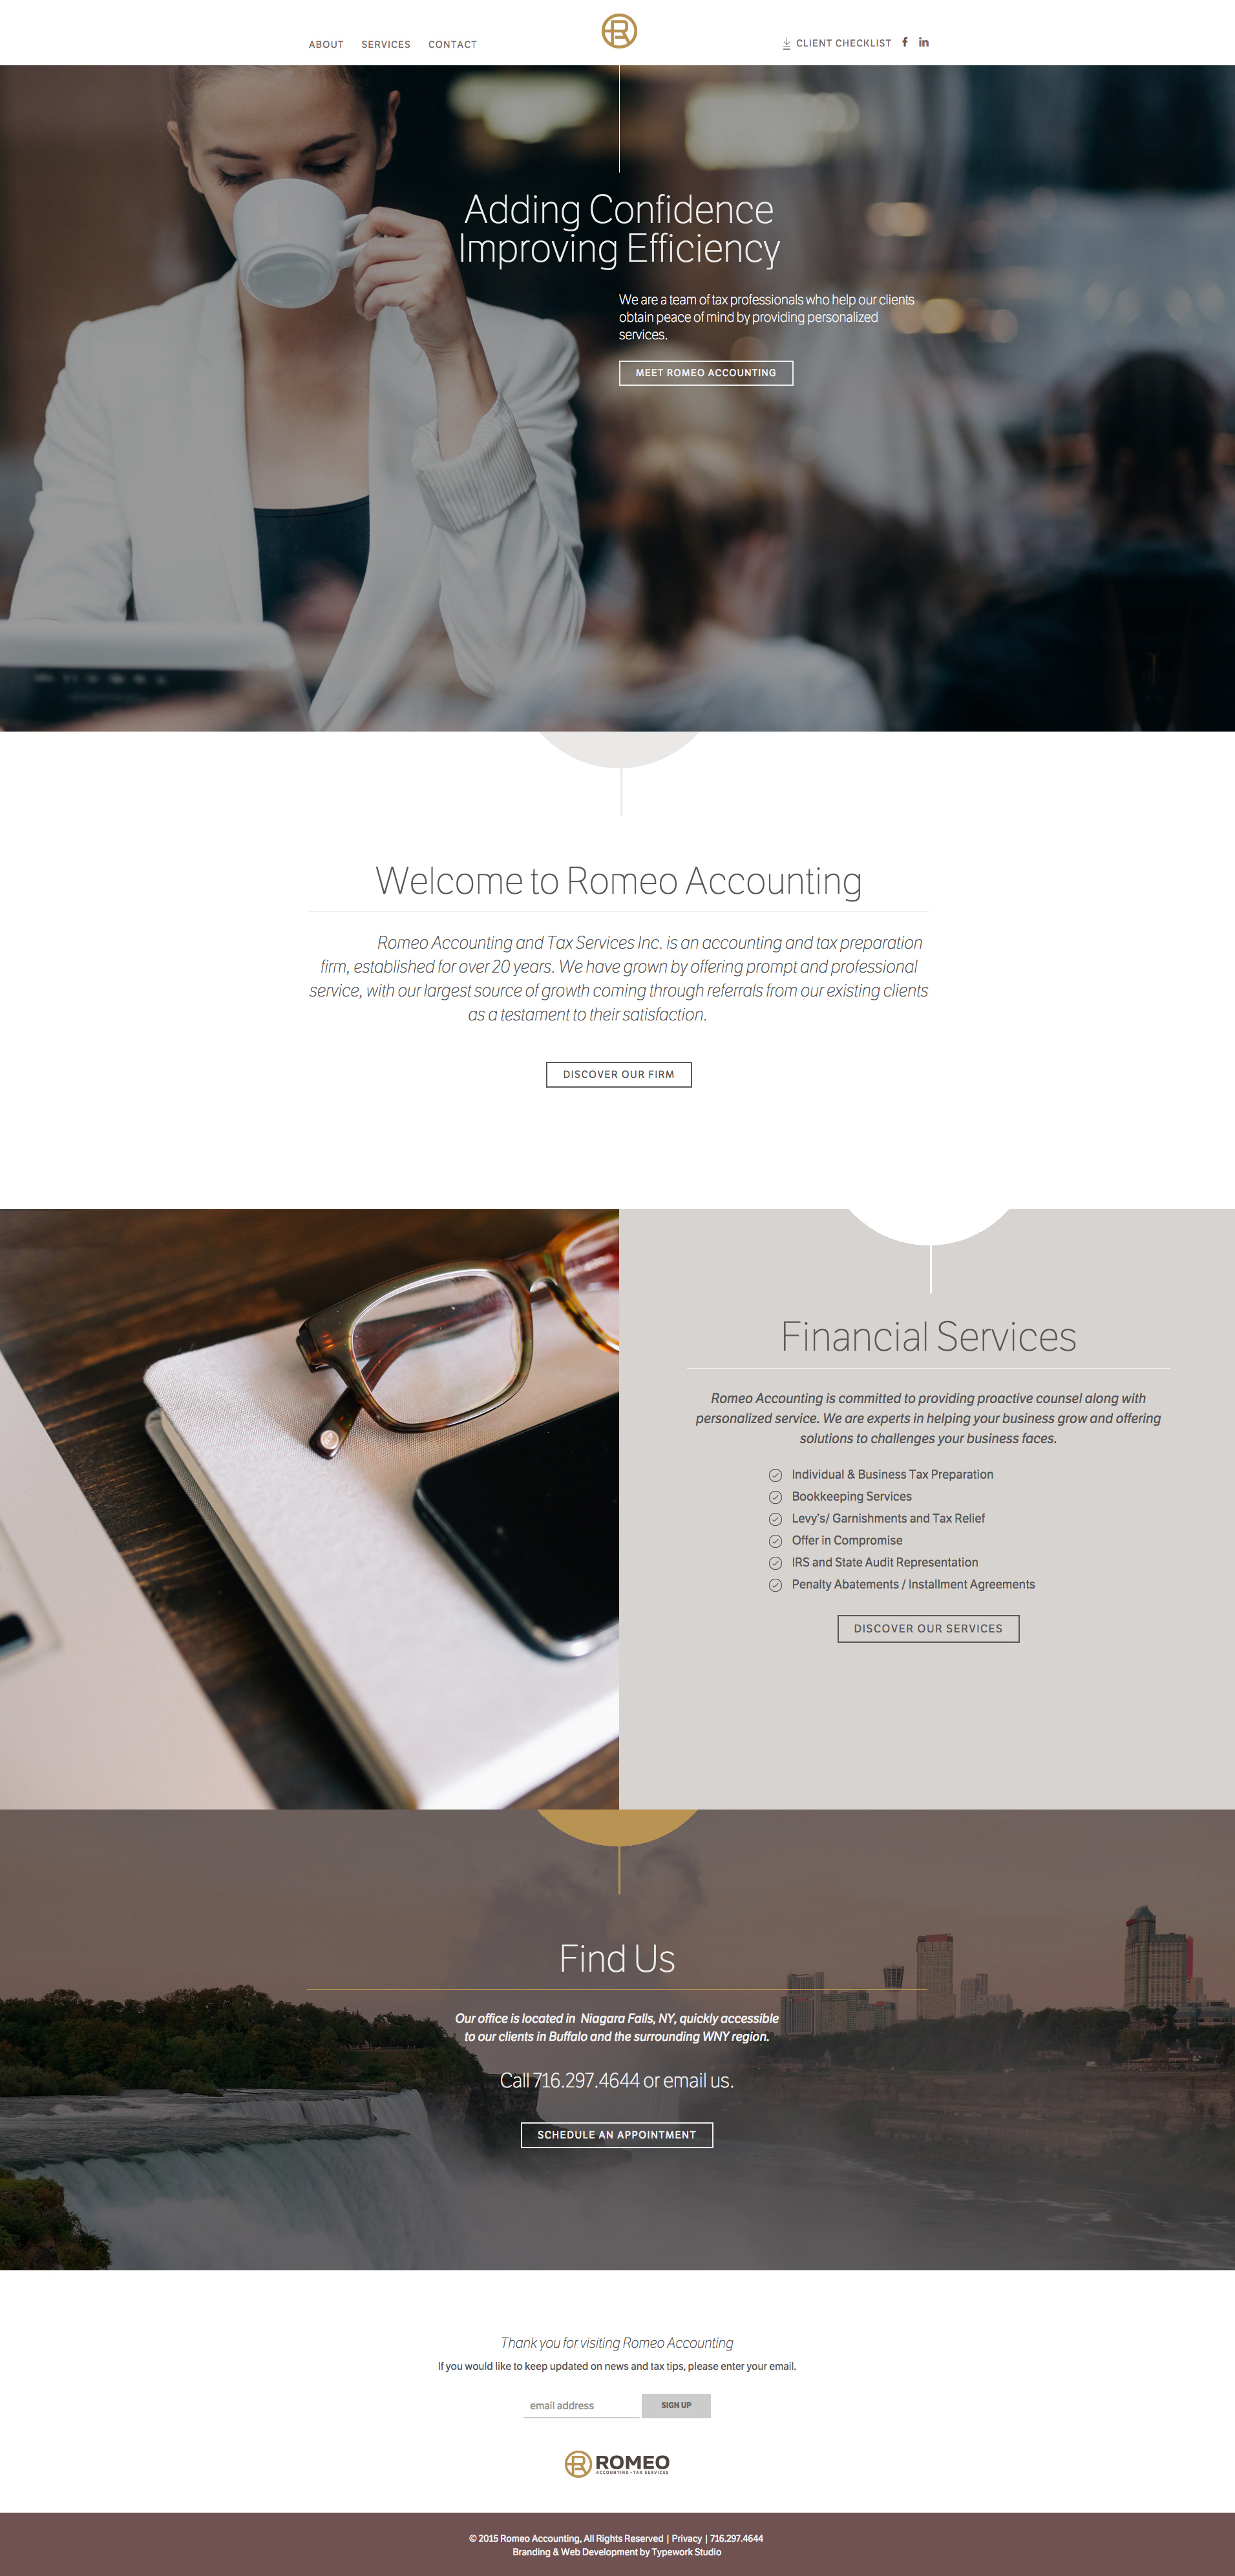 Romeo Accounting CMS Web Design